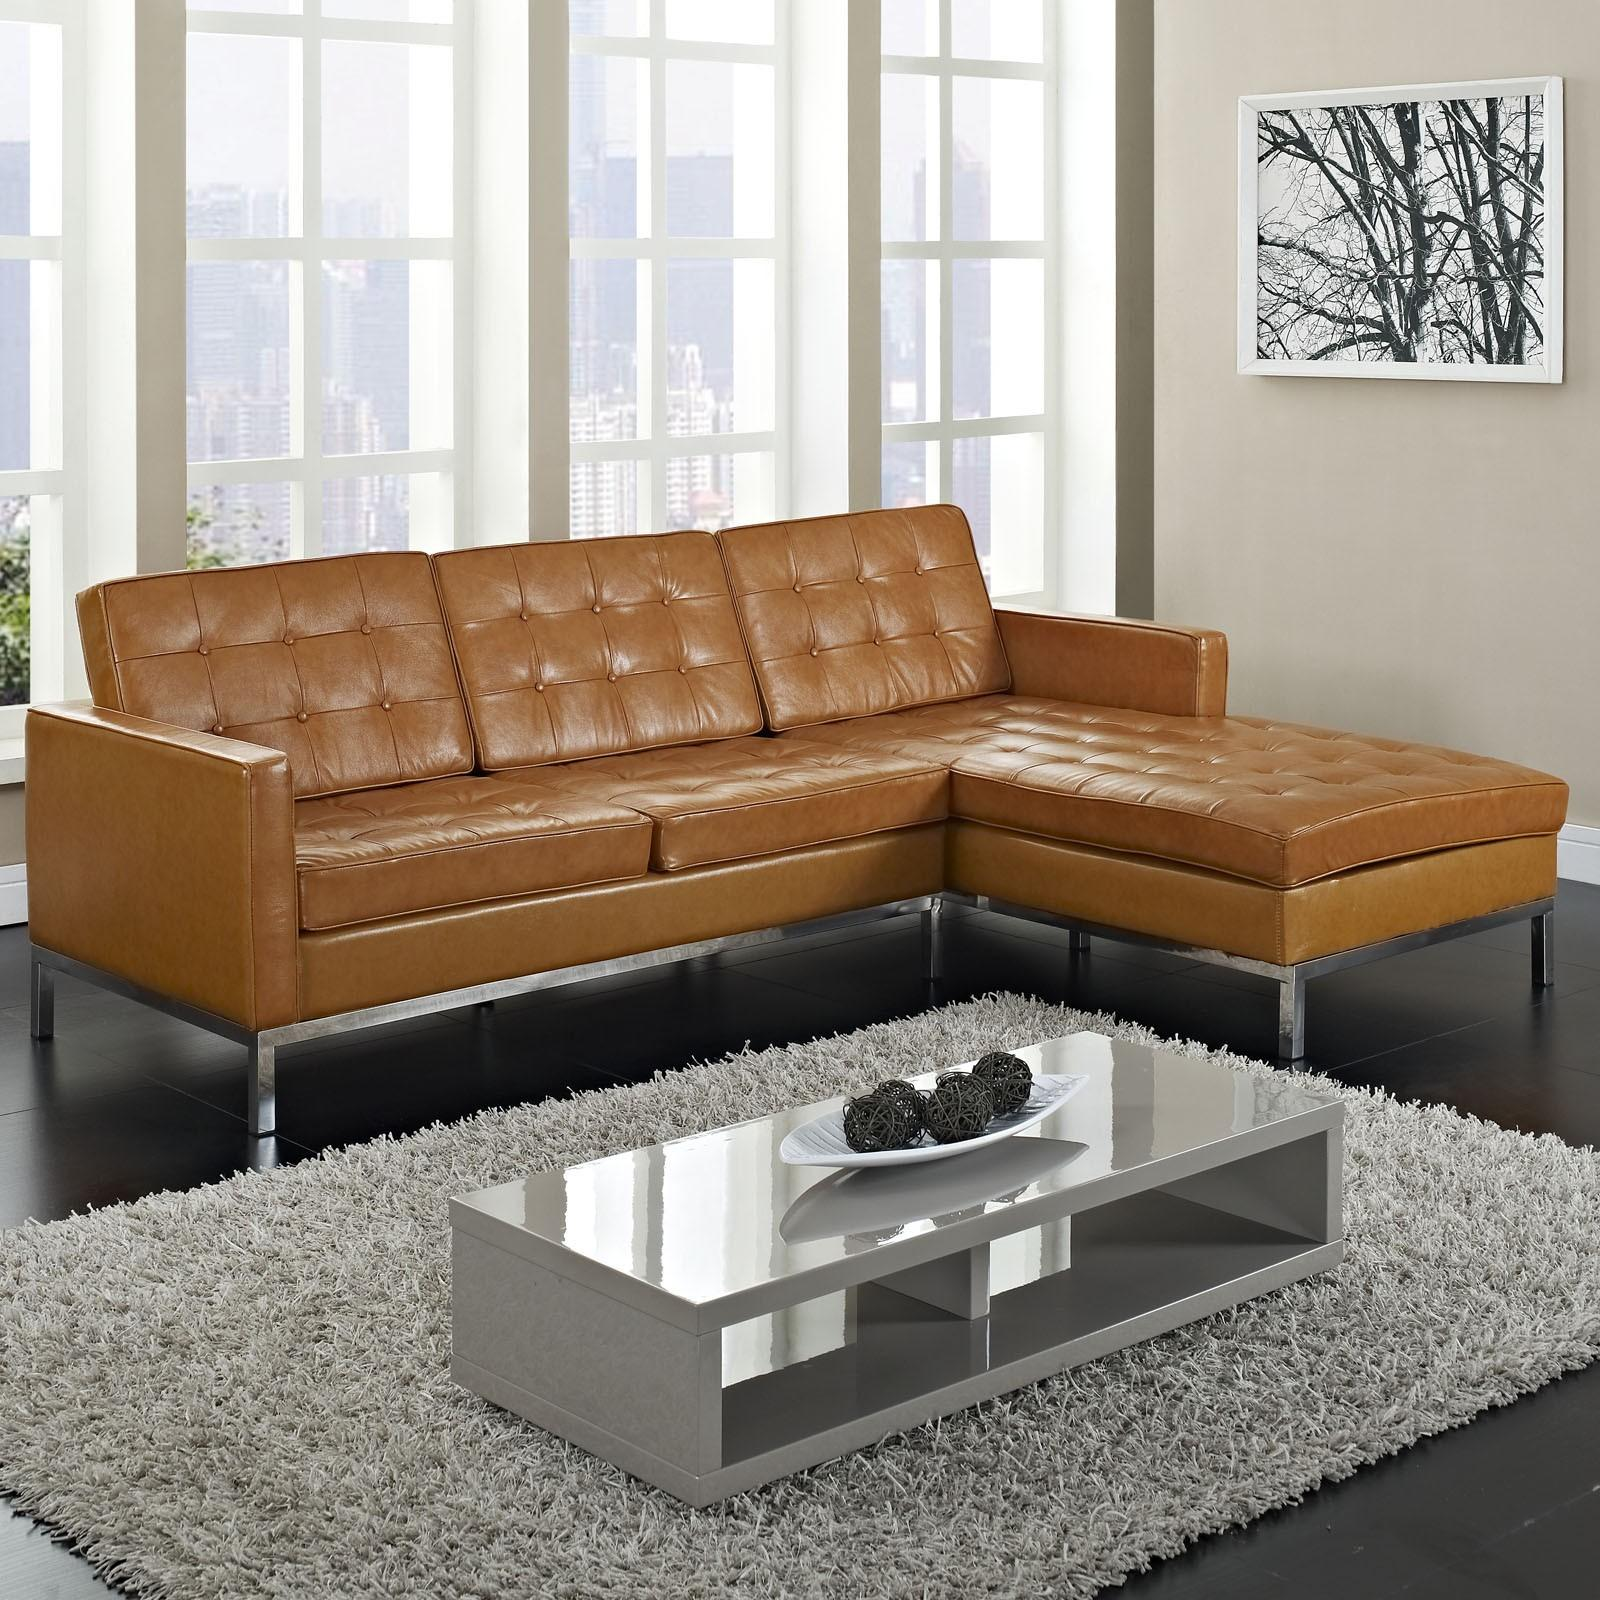 Breathtaking Tan Leather Tufted Sectional Chaise